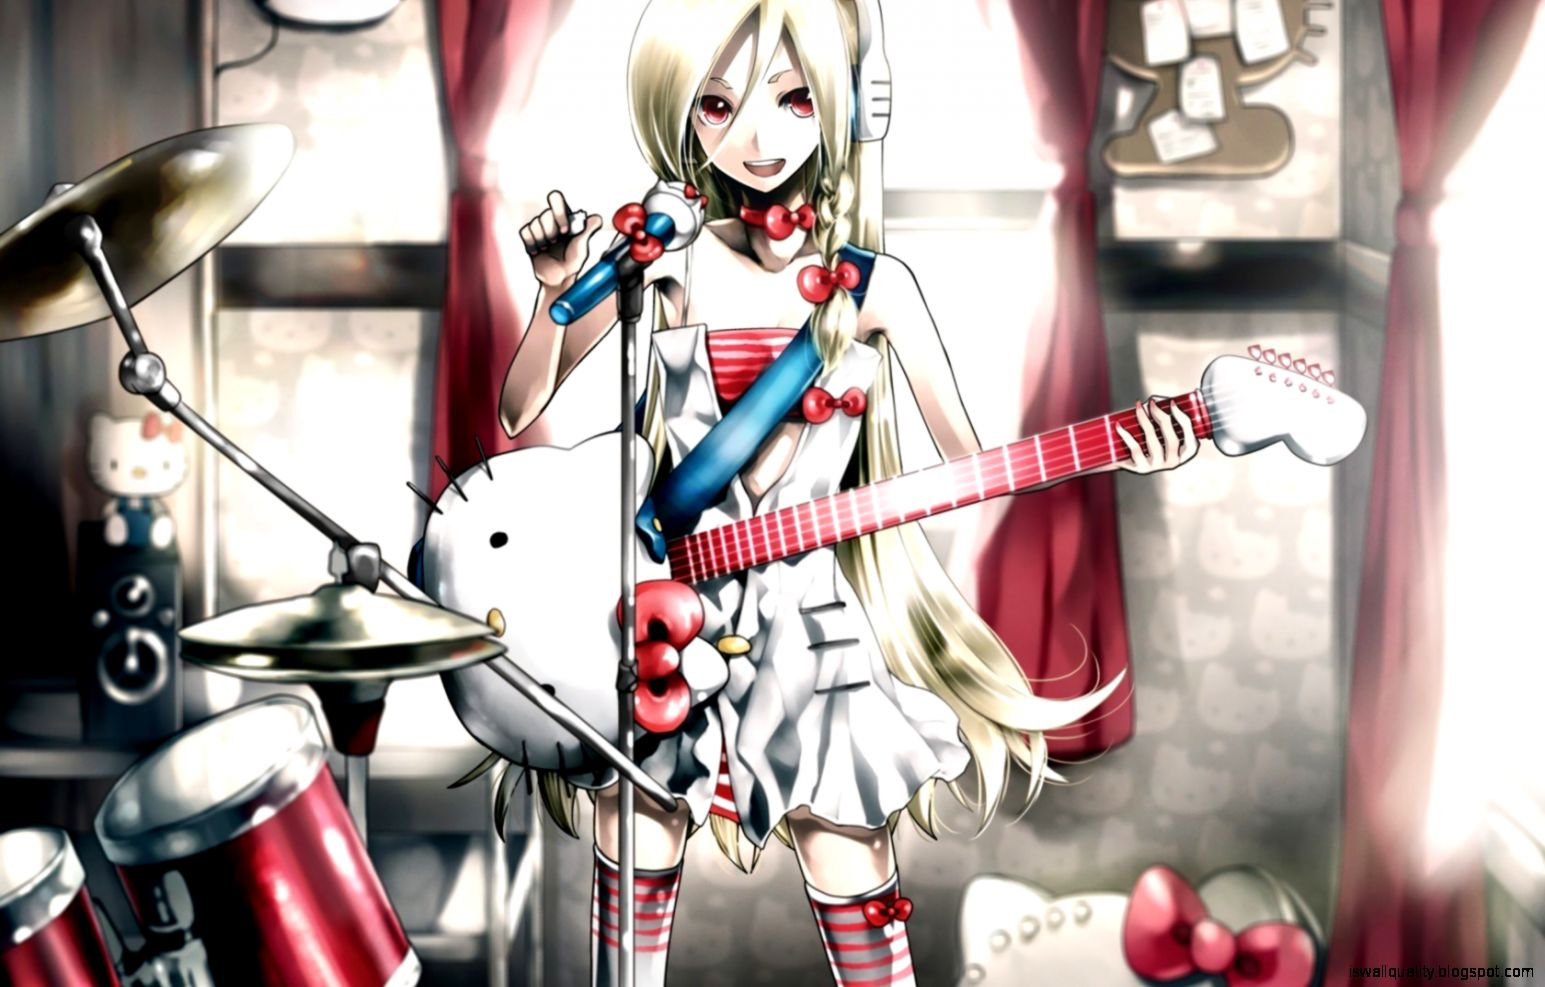 Cute Hd Girls Anime Guitar Wallpaper Wallpapers Quality